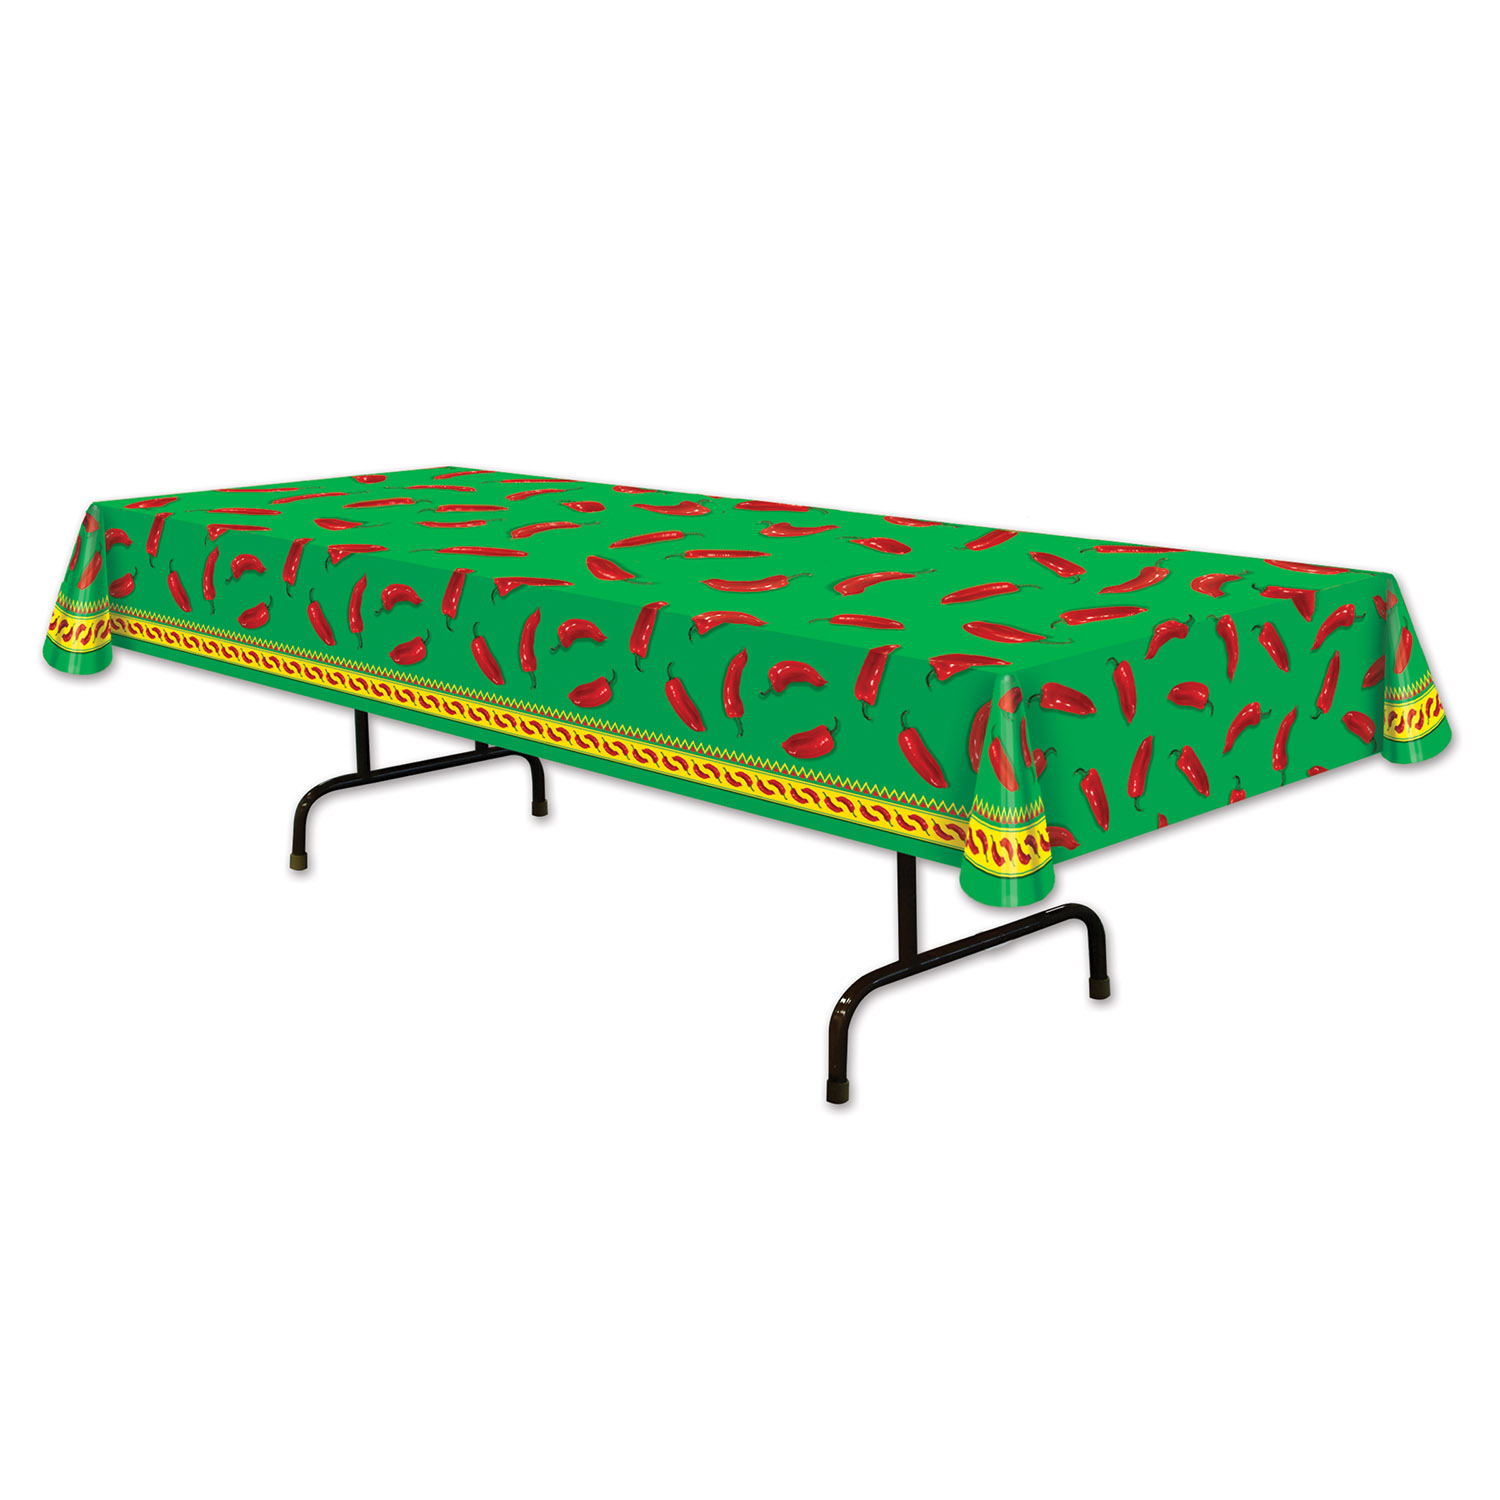 Chili Pepper Tablecover (Pack of 12) Chili Pepper Tablecover, decoration, table cover, cinco de mayo, peppers, wholesale, inexpensive, bulk